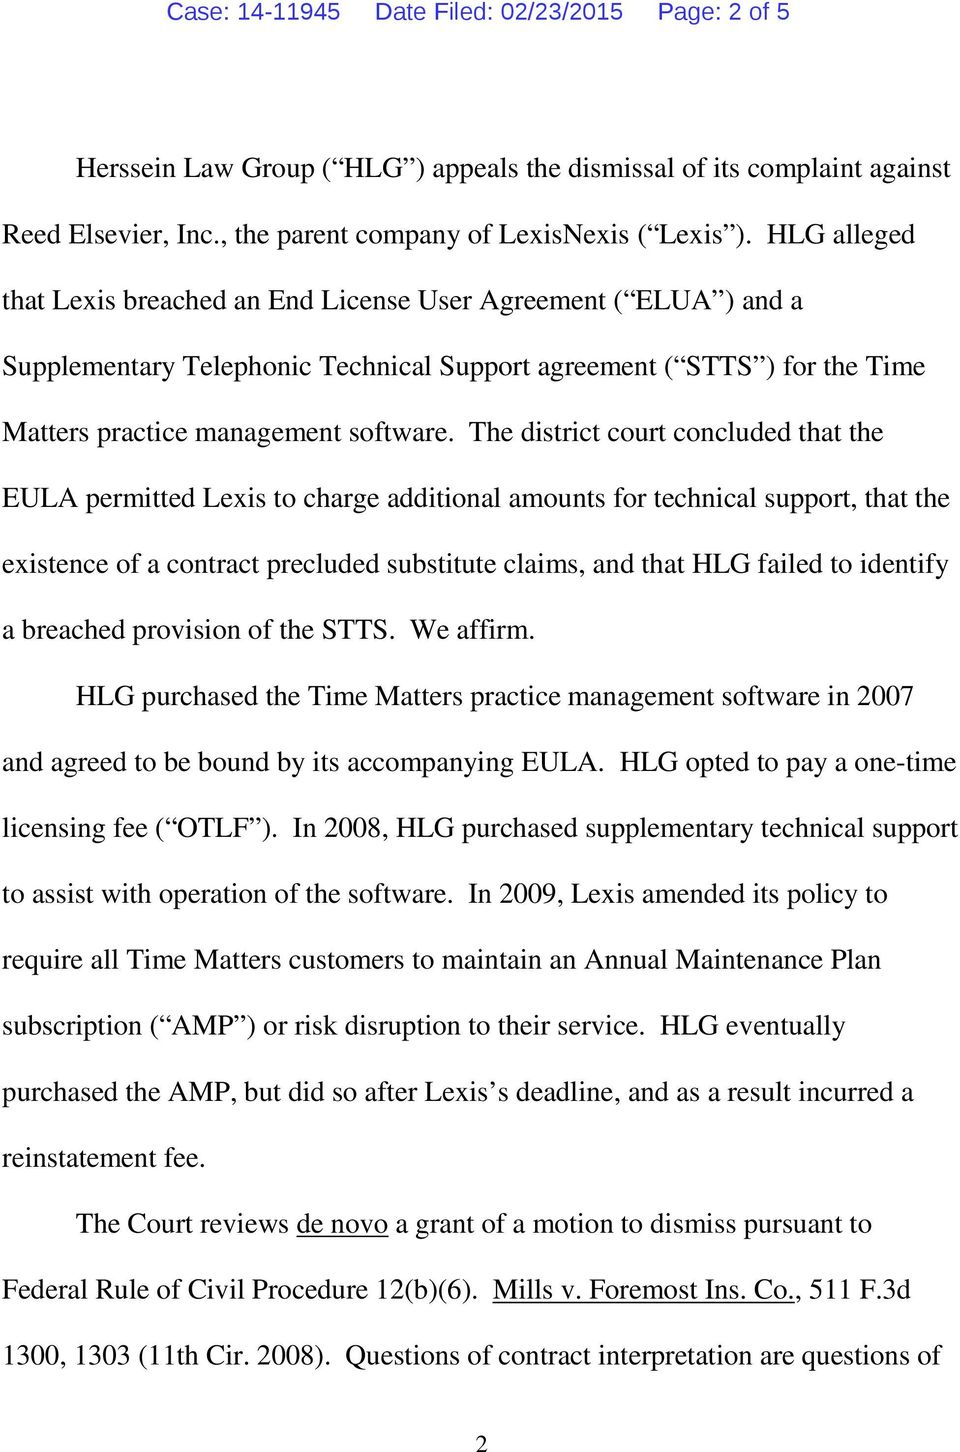 The district court concluded that the EULA permitted Lexis to charge additional amounts for technical support, that the existence of a contract precluded substitute claims, and that HLG failed to